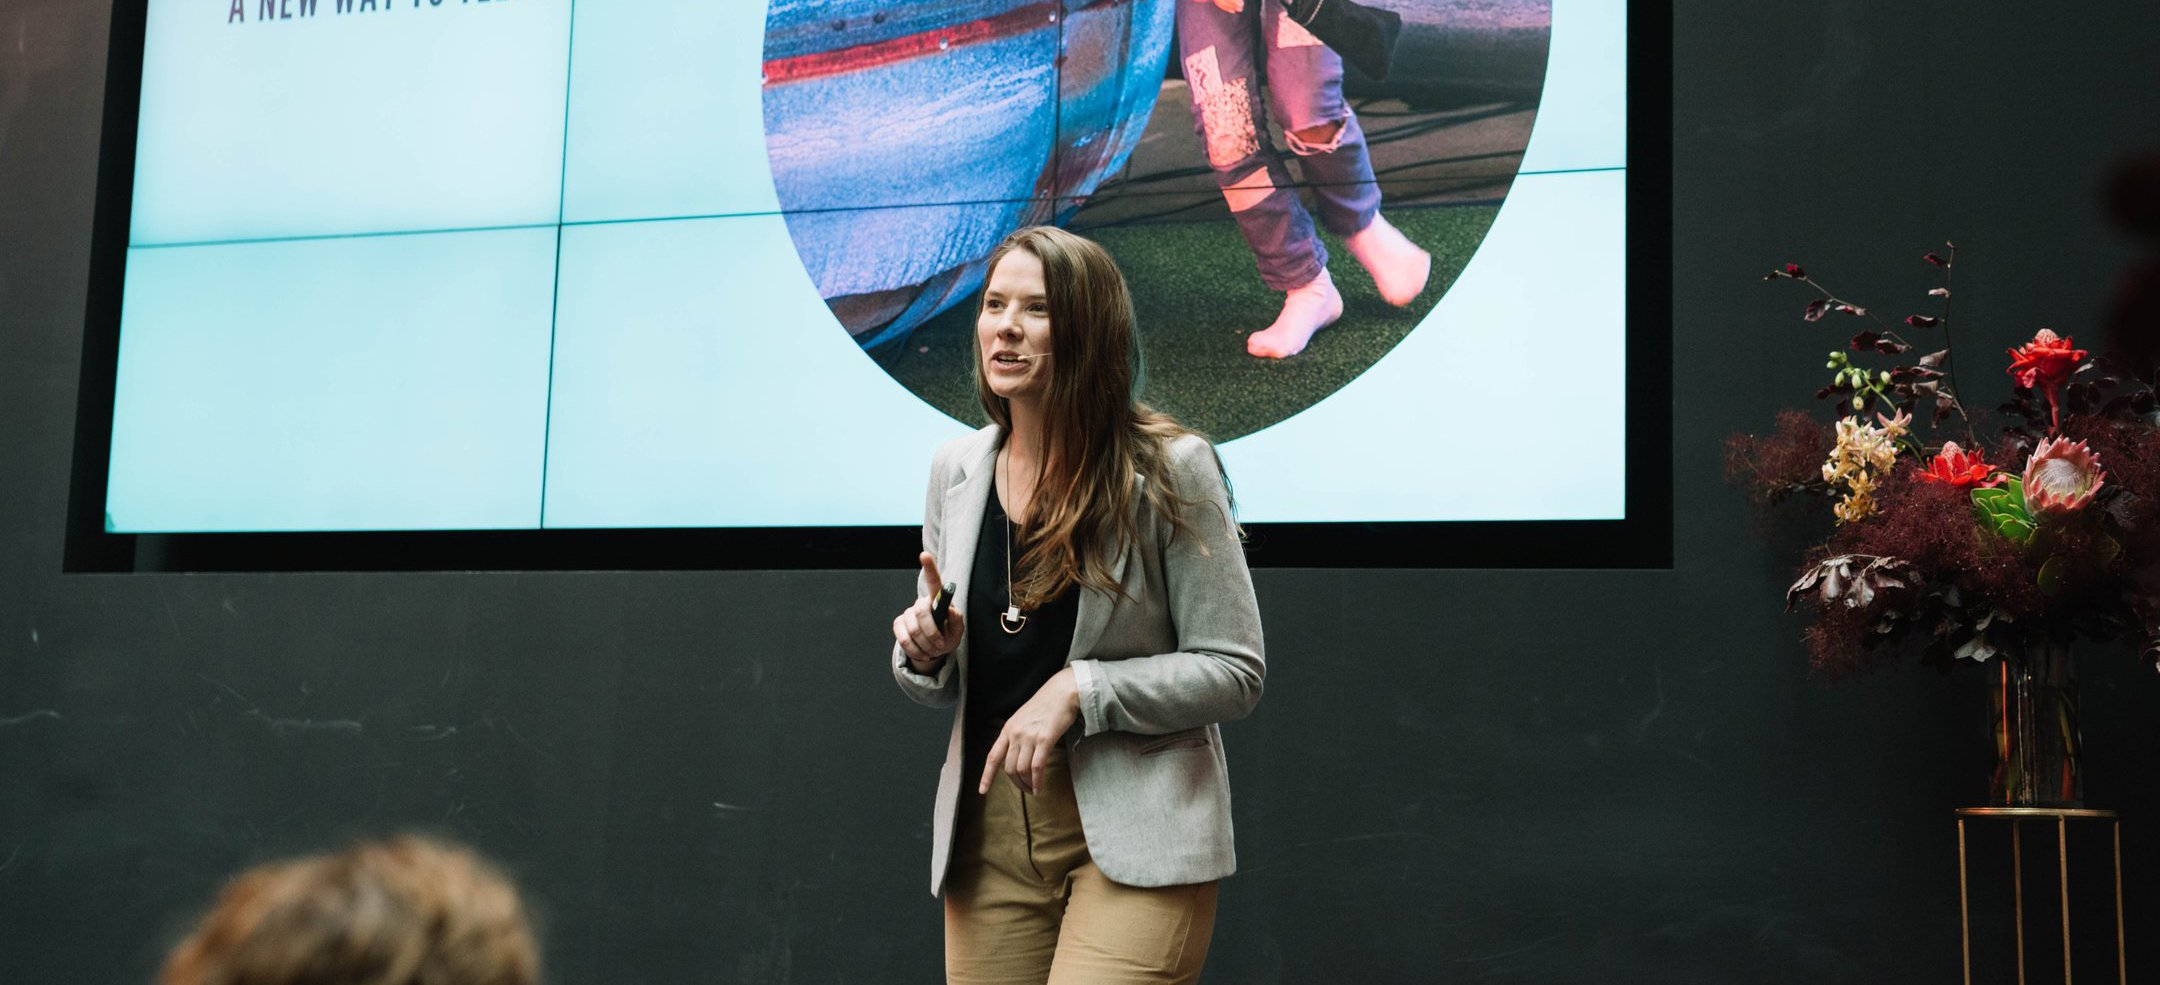 Gemma Pepper on starting out in creative tech